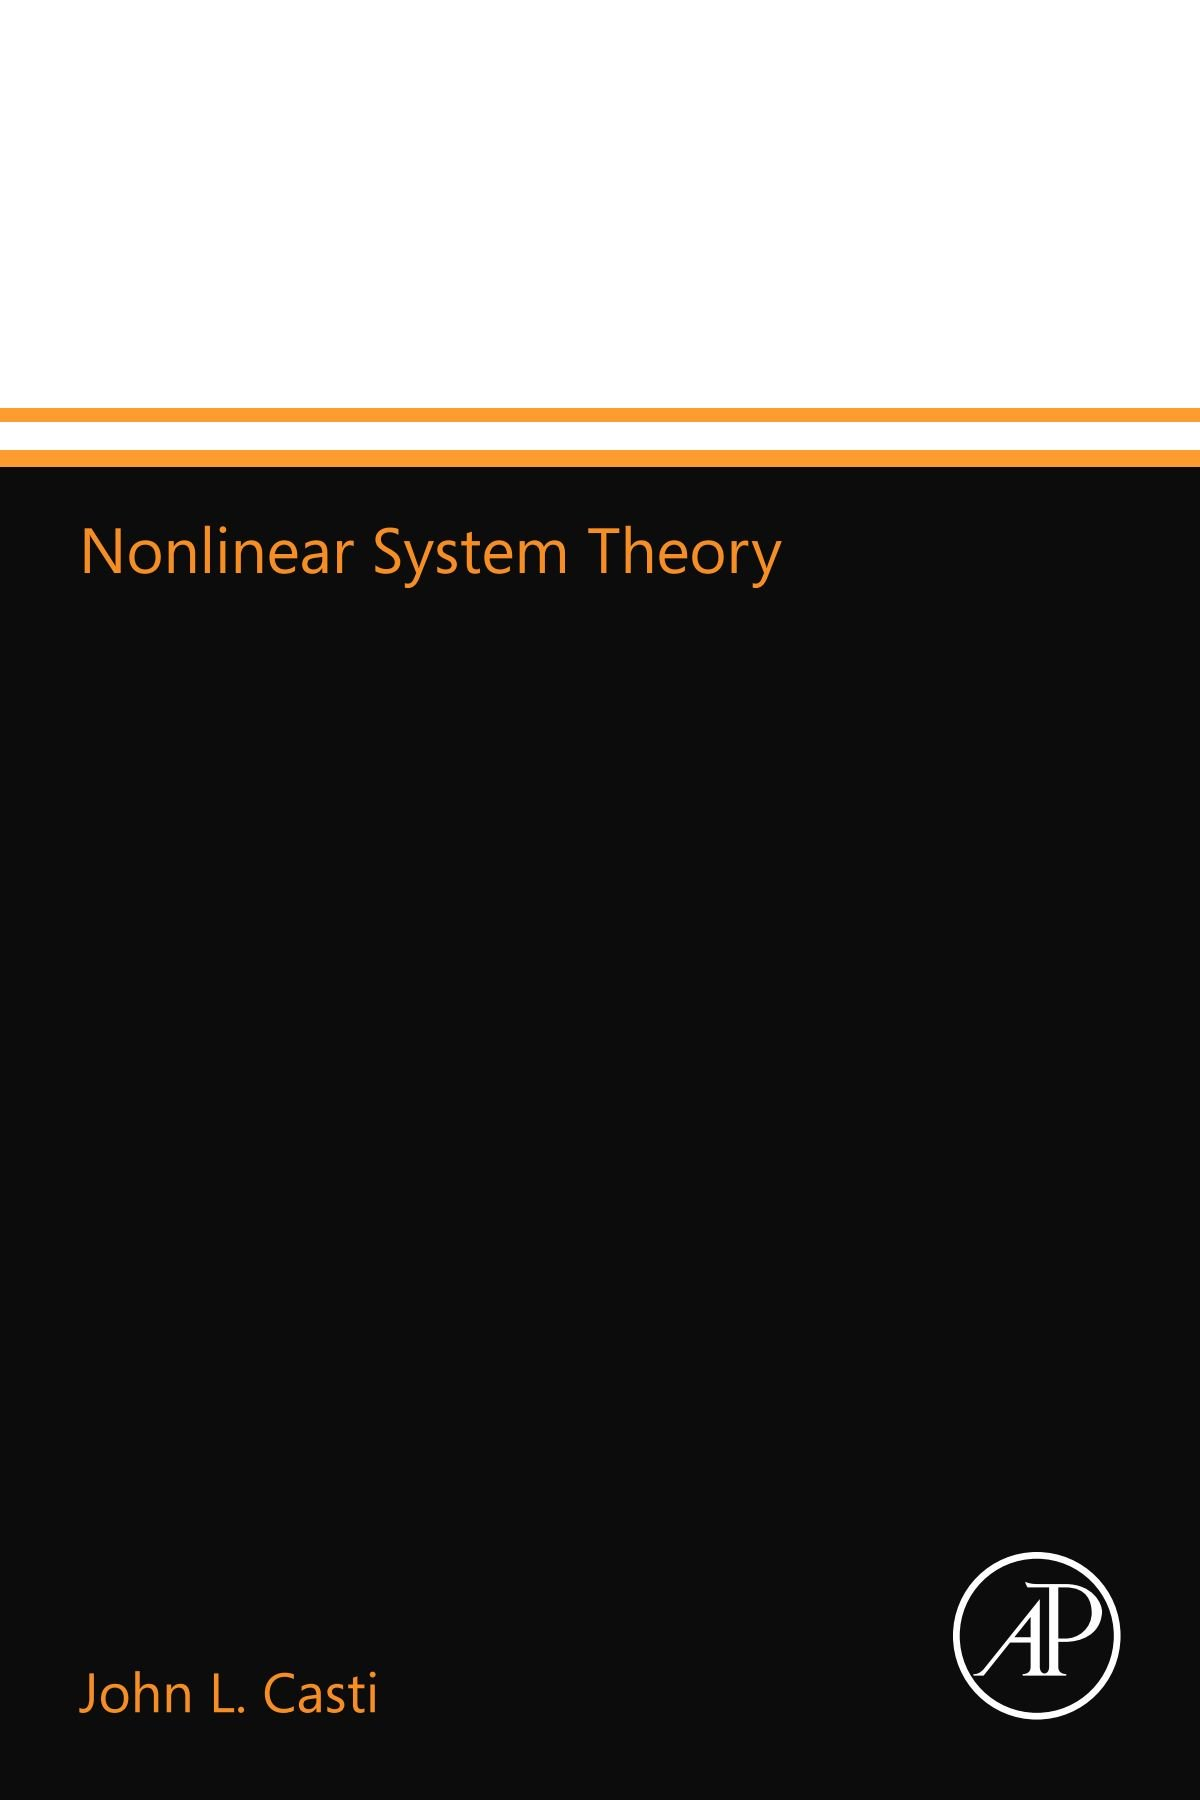 Download Nonlinear System Theory PDF